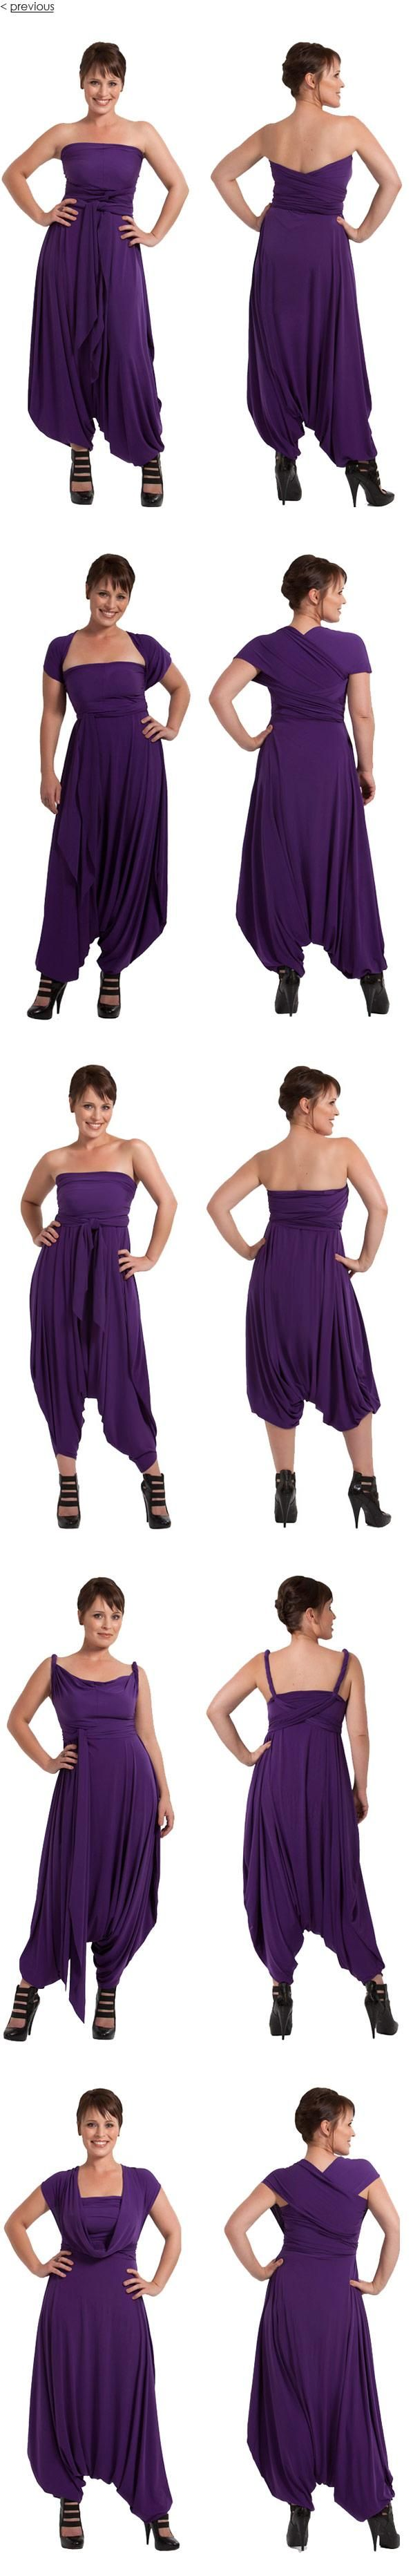 JASMINE - Sass Designs - it's a funky jumpsuit that can also look like a dress.